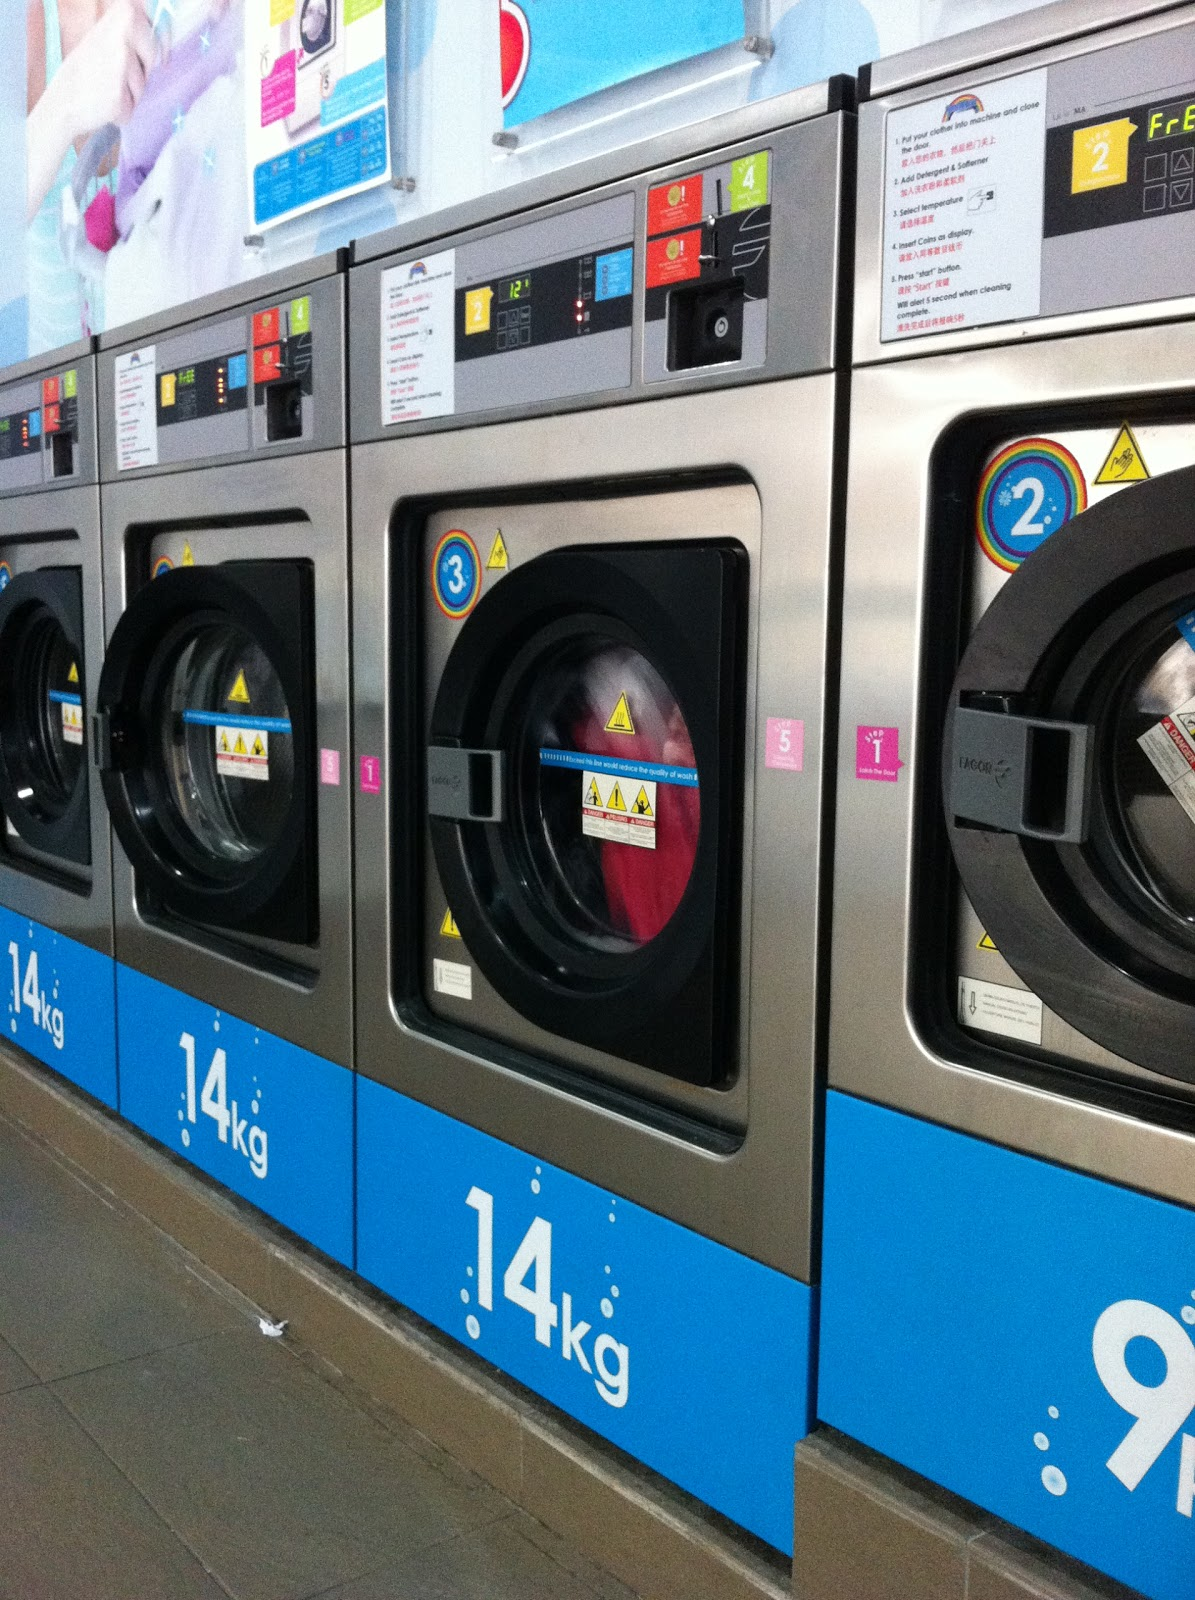 Fruitheart Practical Self Service Laundry